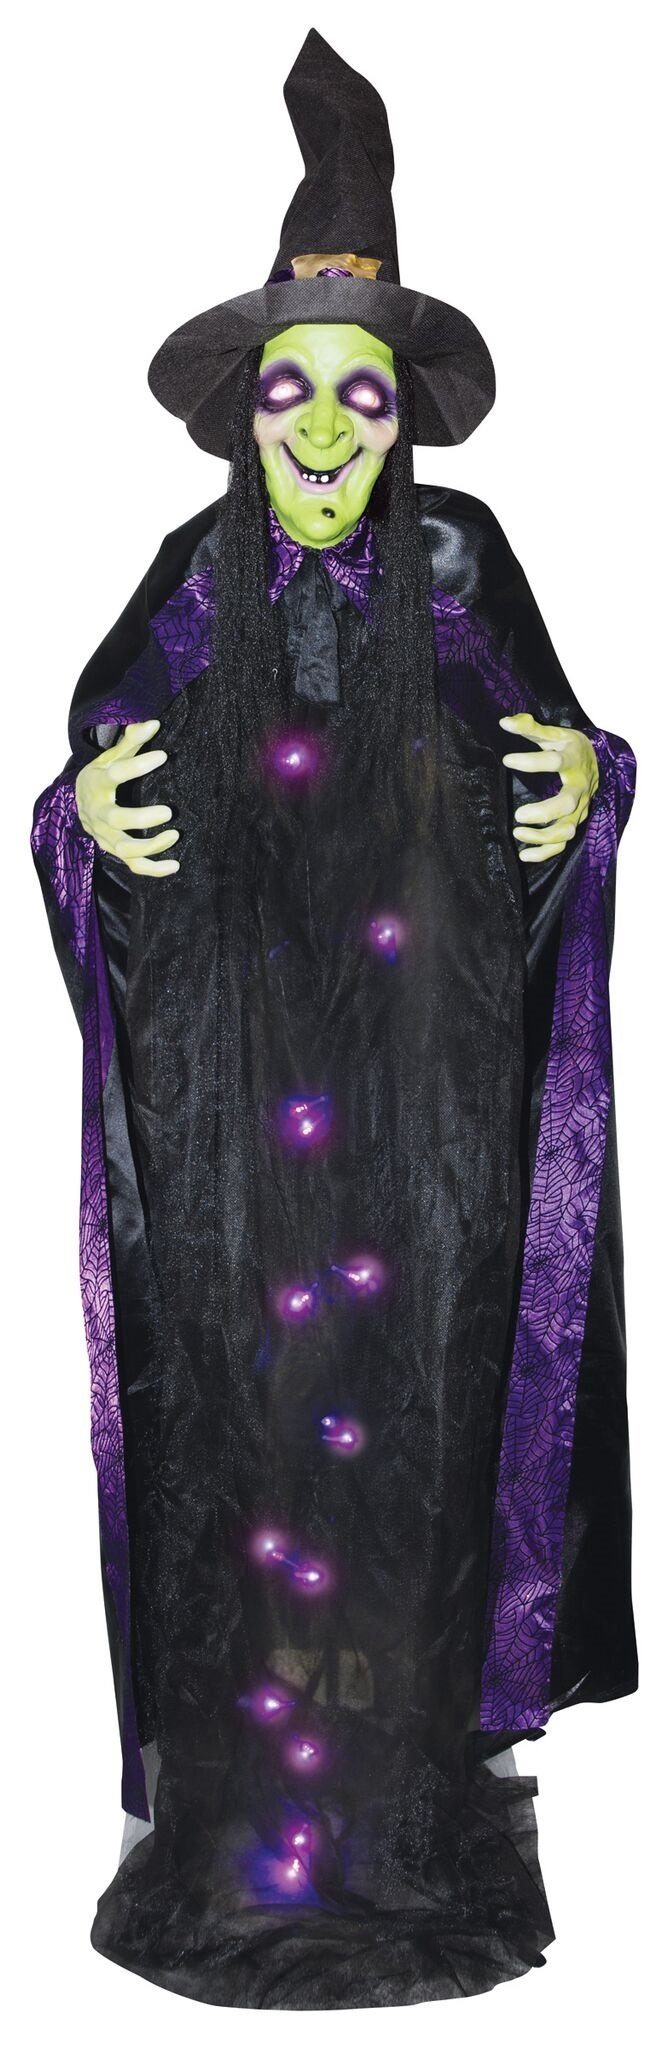 Lifesize 6' Light Up Talking Witch Halloween Standing Prop Decoration by The Gothic Collection